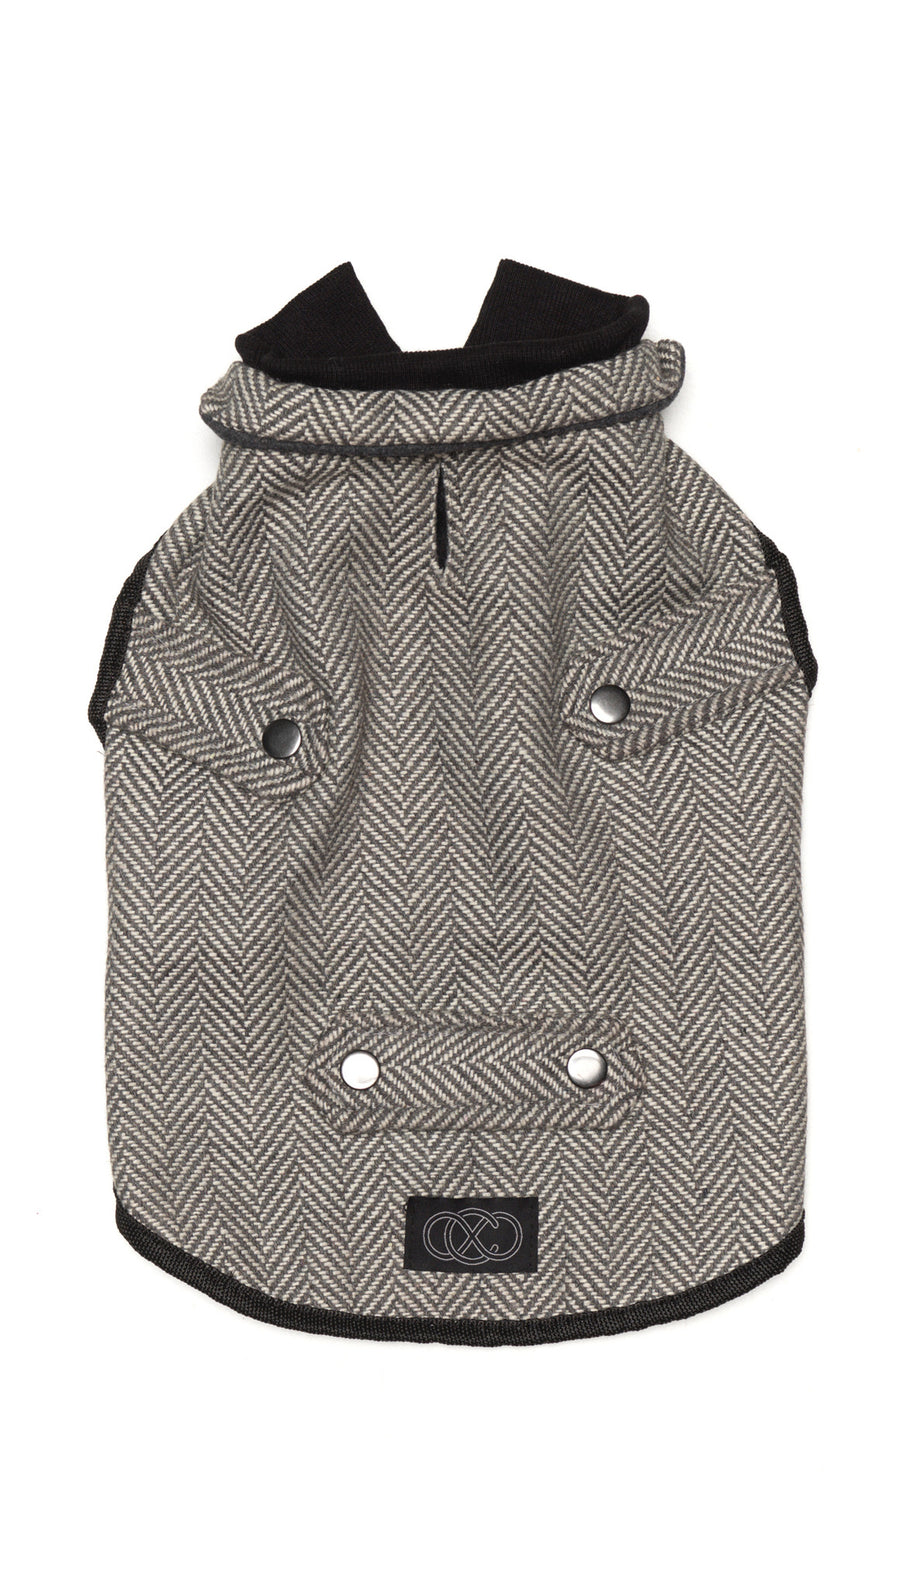 Tweed Knit Dog Jacket | Winter Warrior Dog Coat | Suits All Dogs in Sizes XXS - XXL